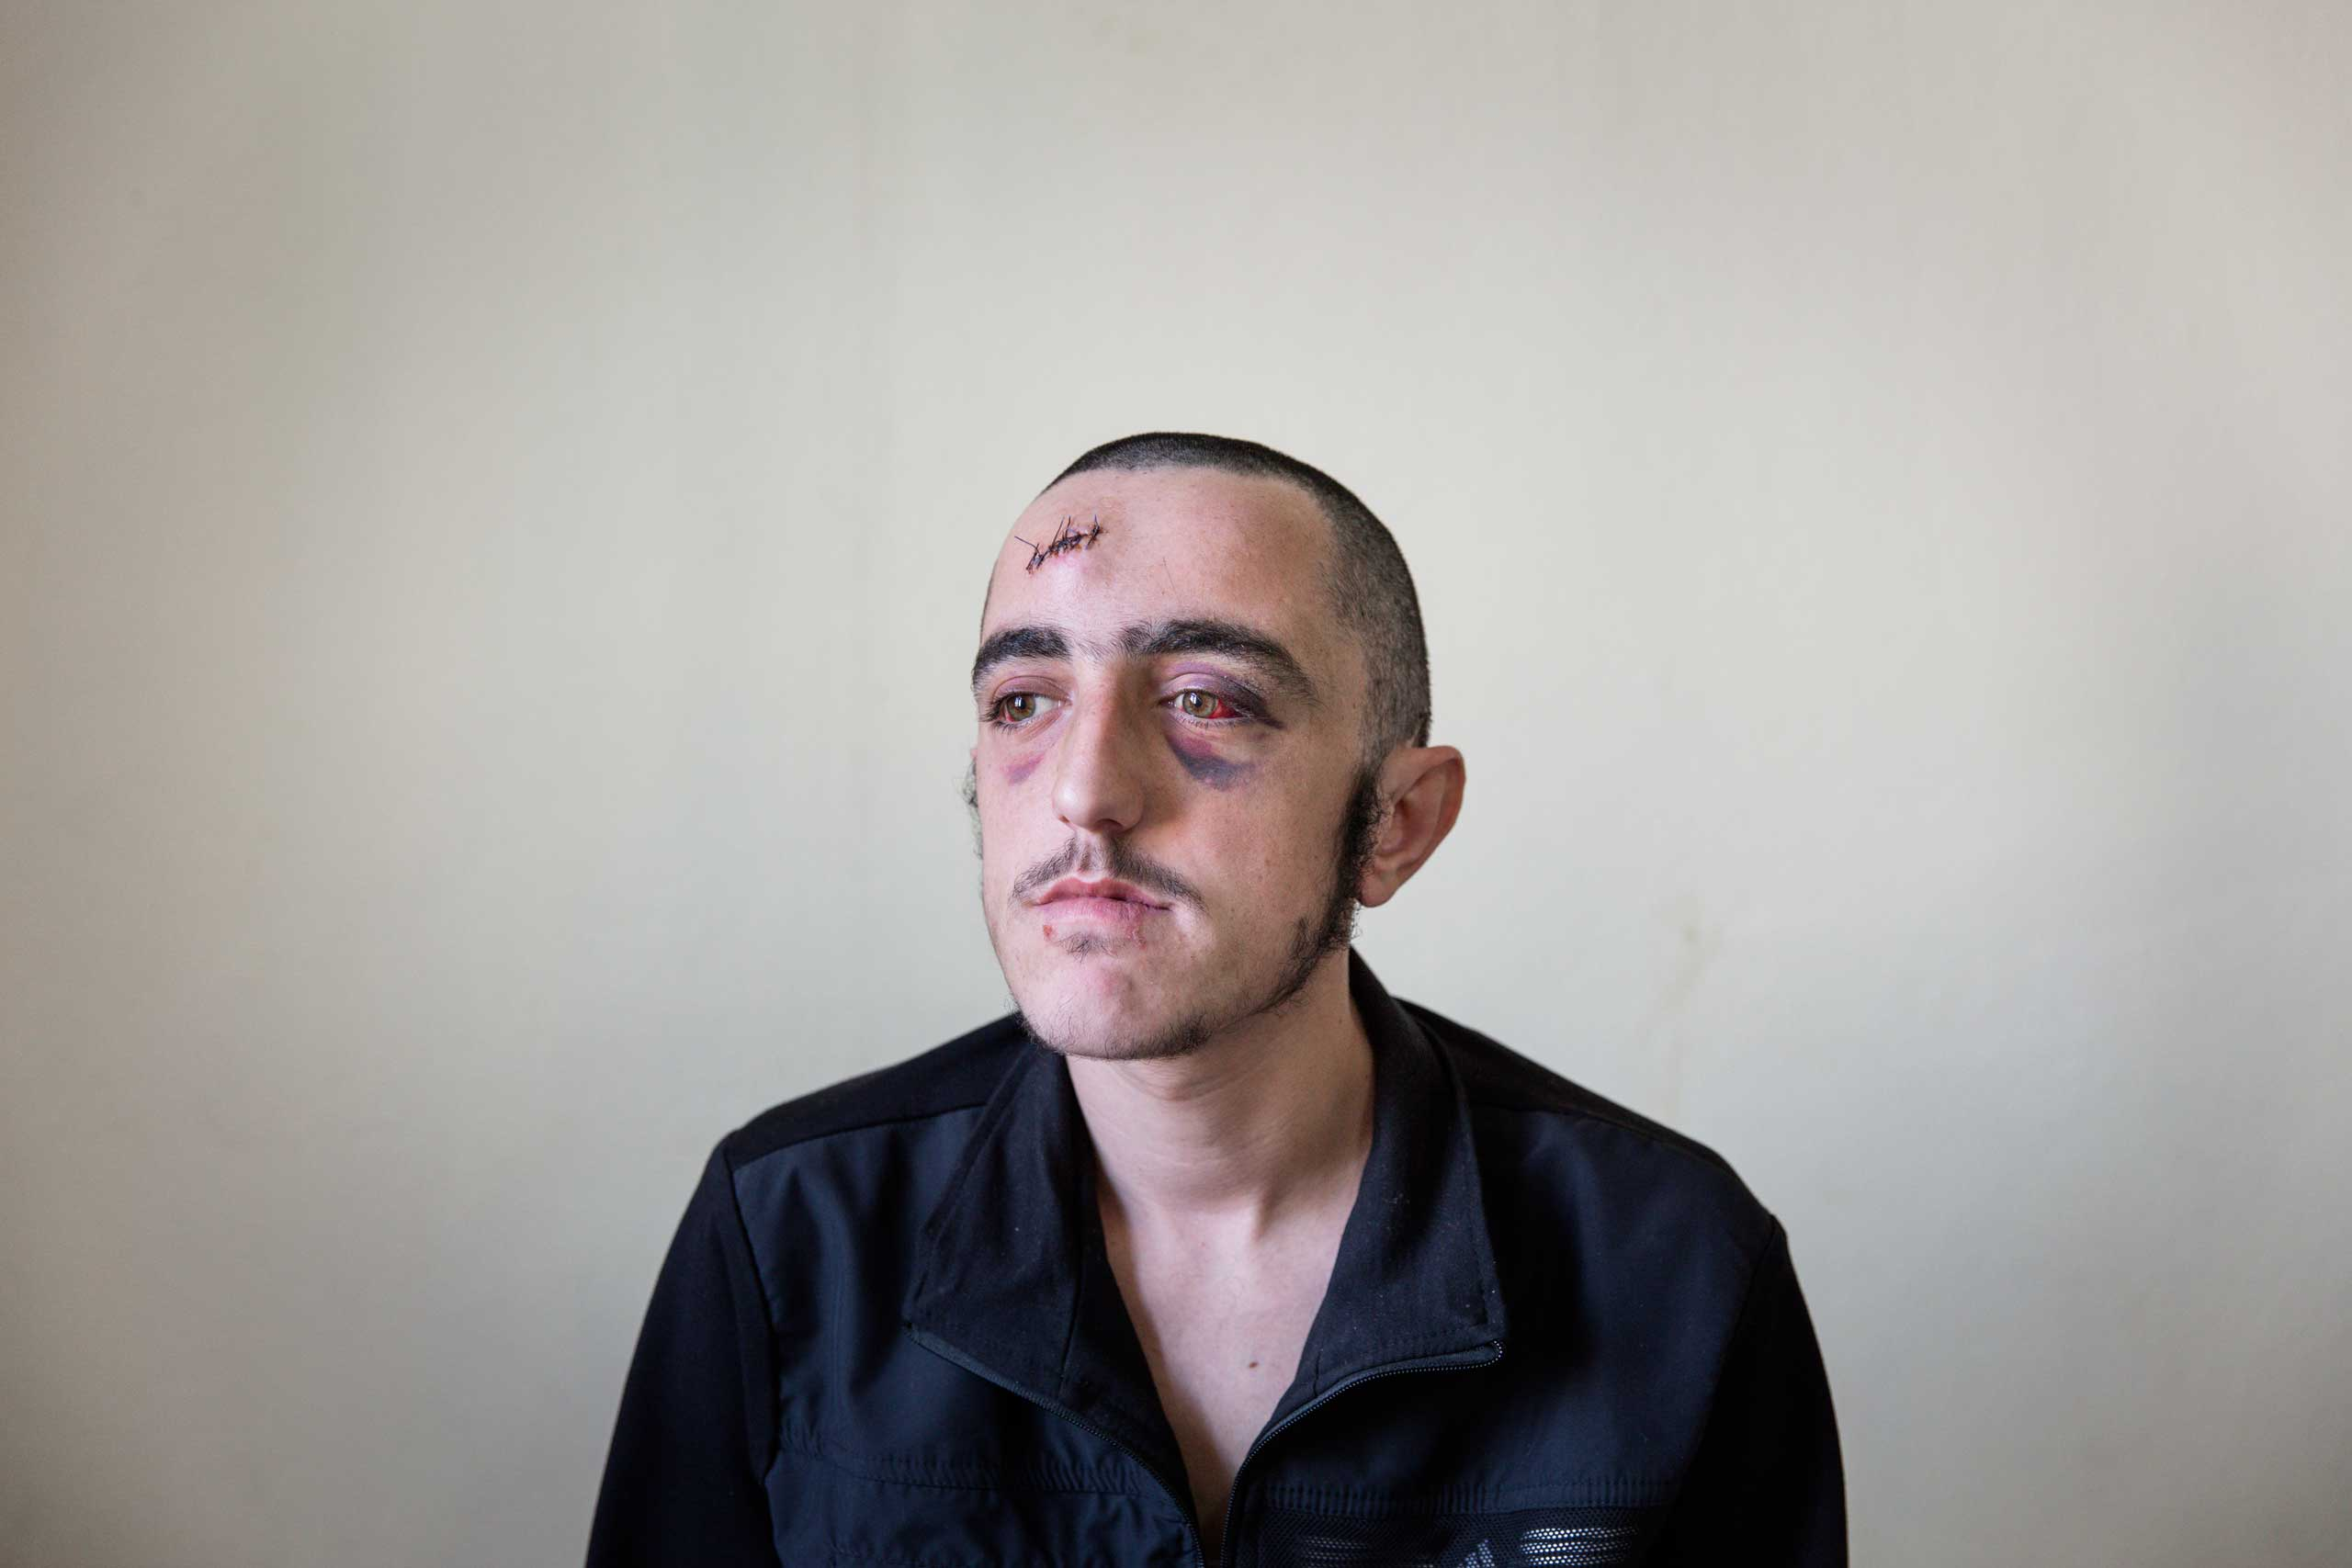 19-year-old Syrian rebel fighter Mamar Obin sits for a portrait at a small medical clinic inside Turkey where he was being treated for a head injury. He was hit by debris in what he said was a drone attack.